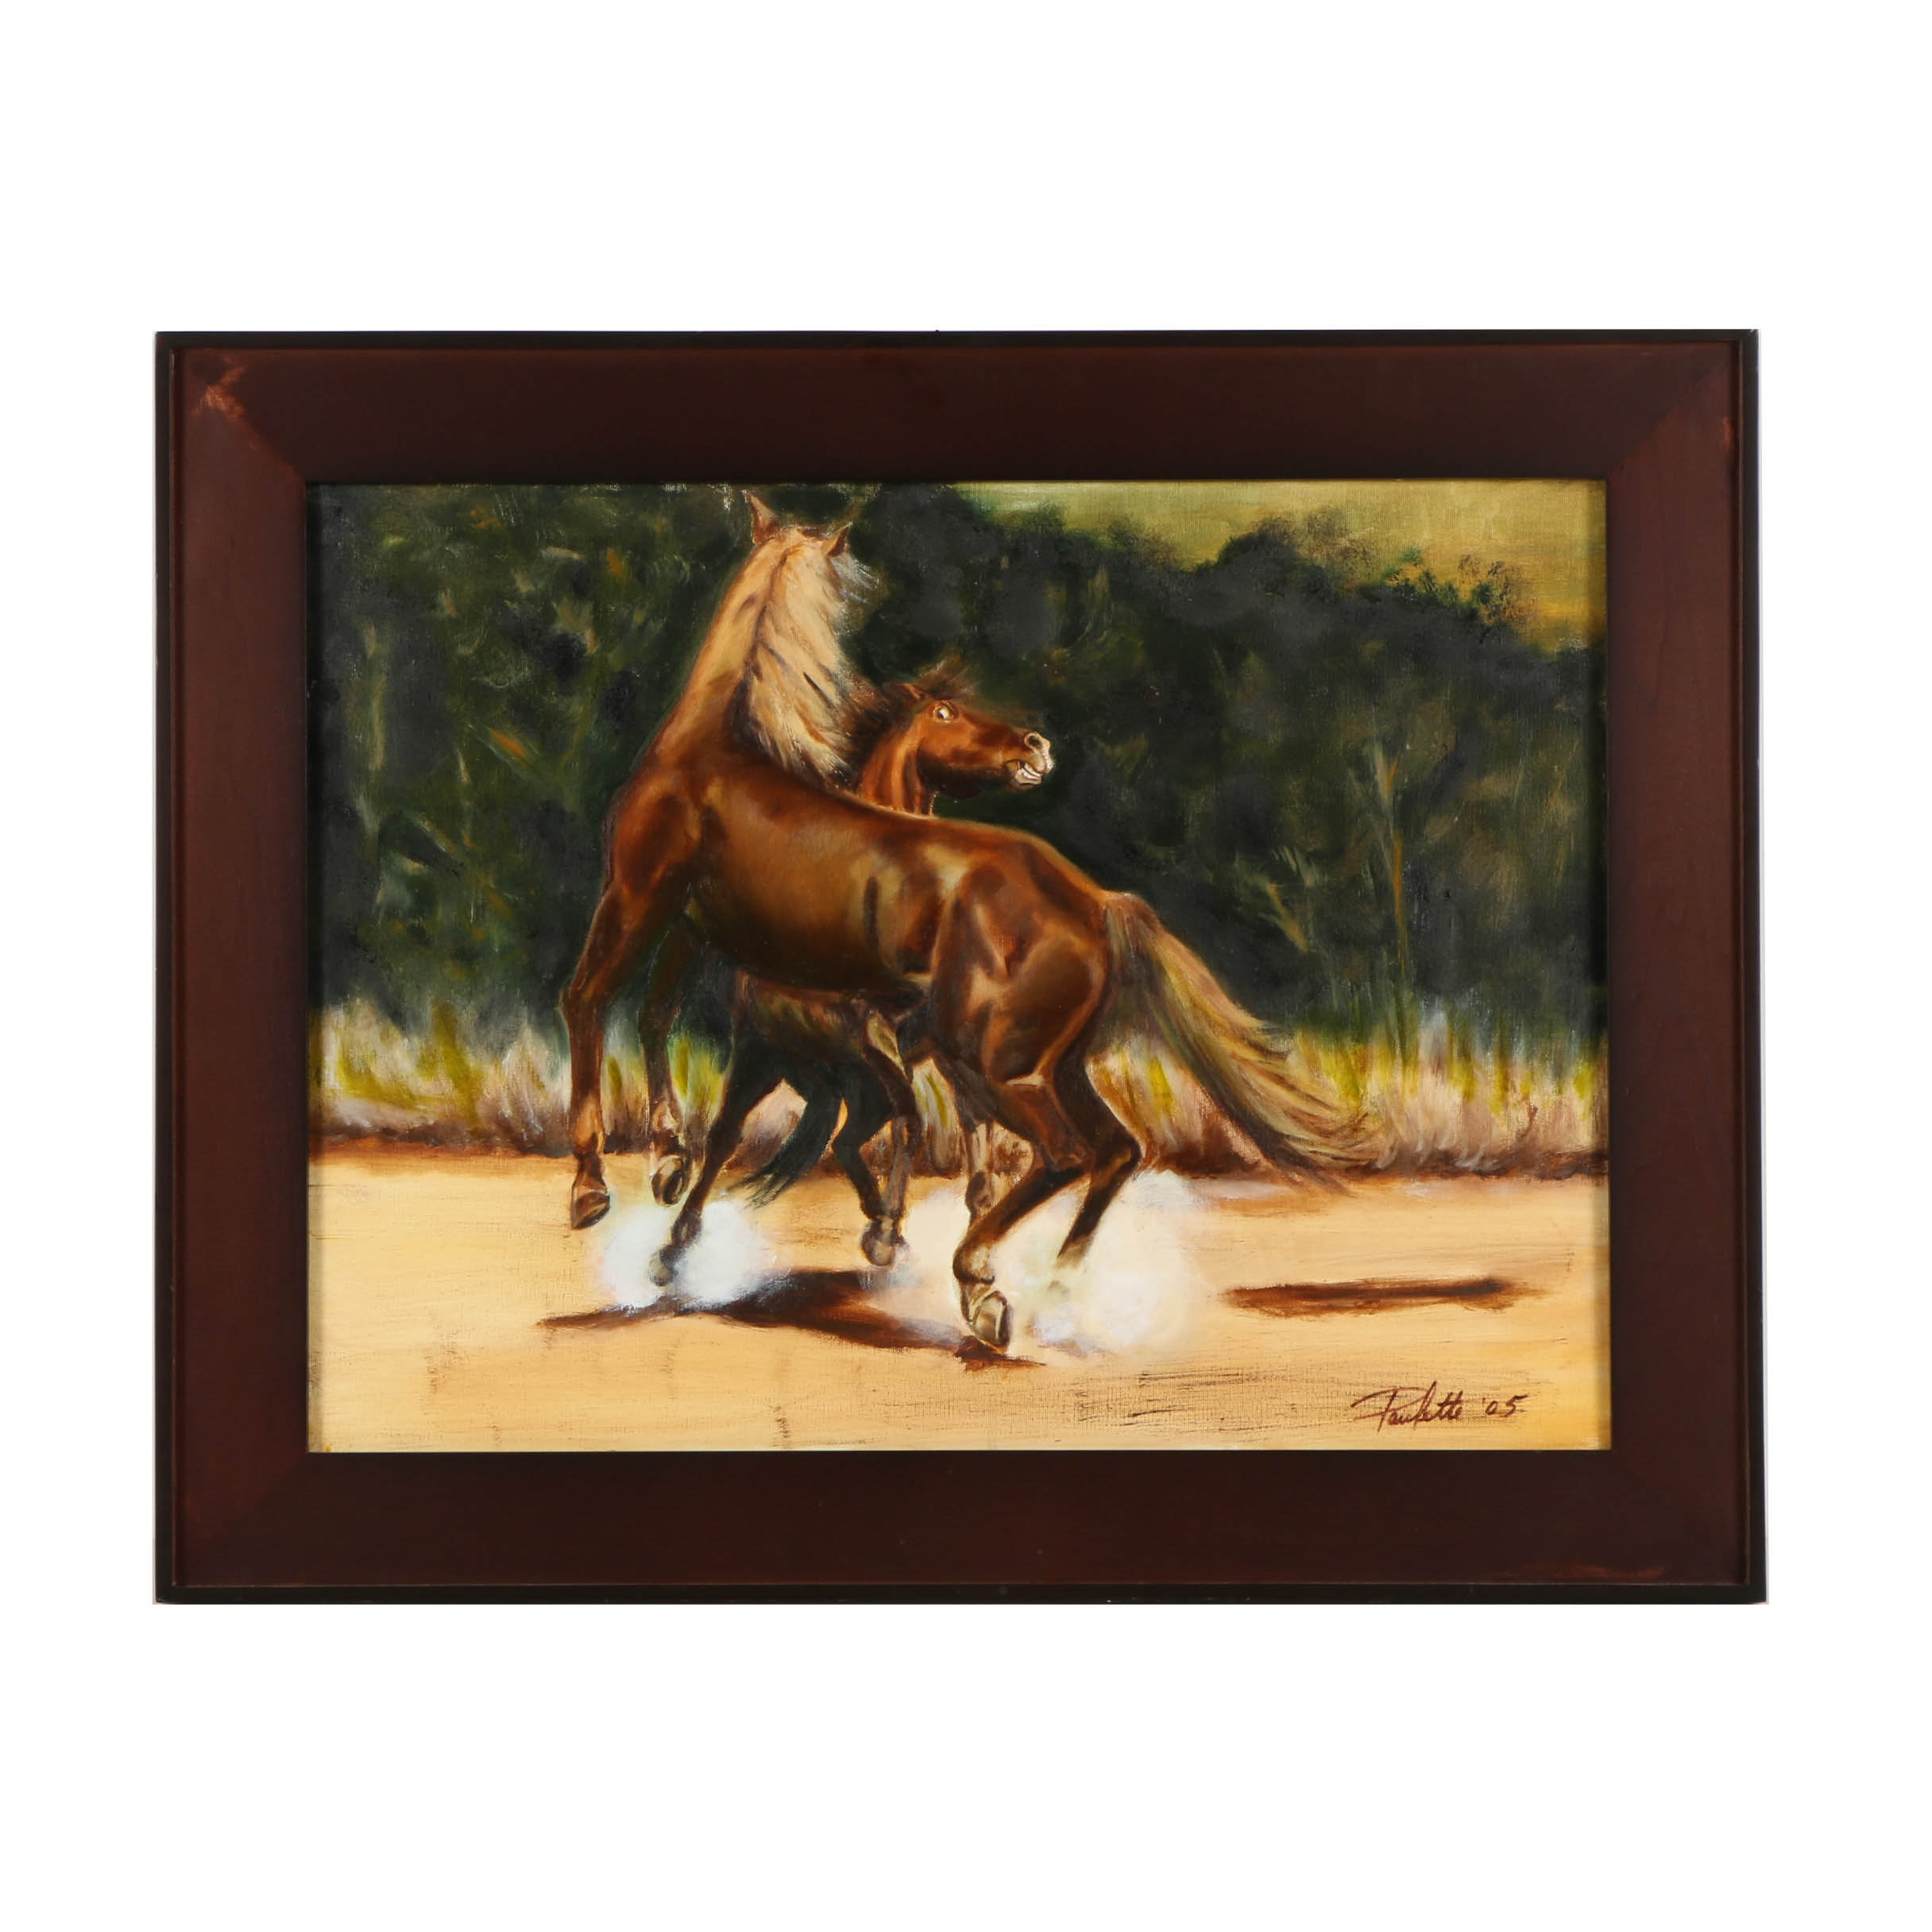 Paulette Oil Painting on Canvas of Horses